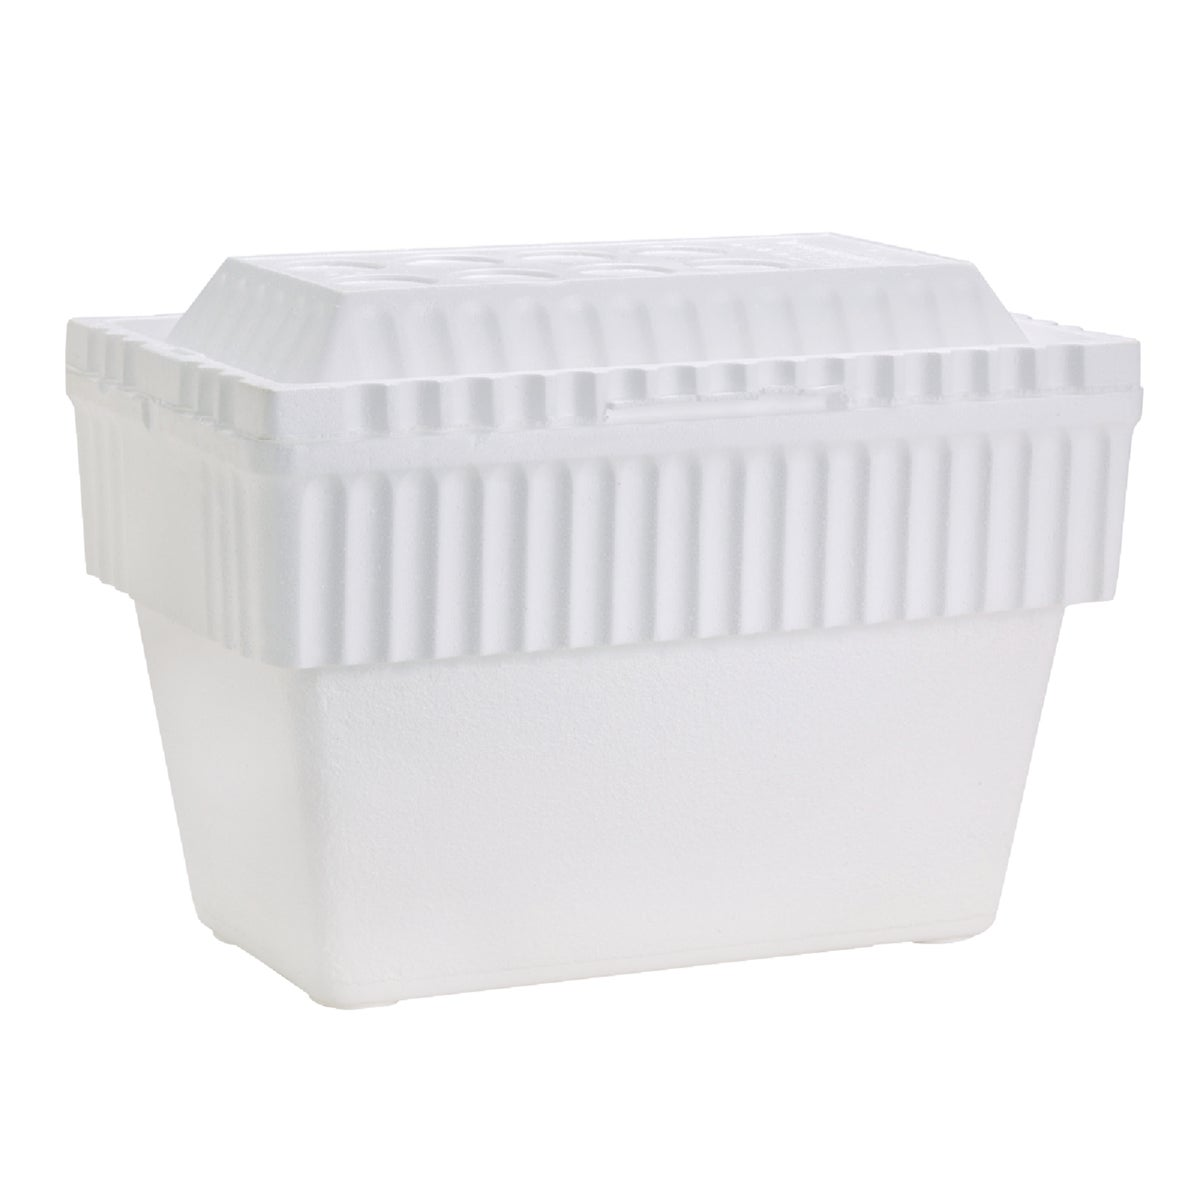 40QT FOAM COOLER